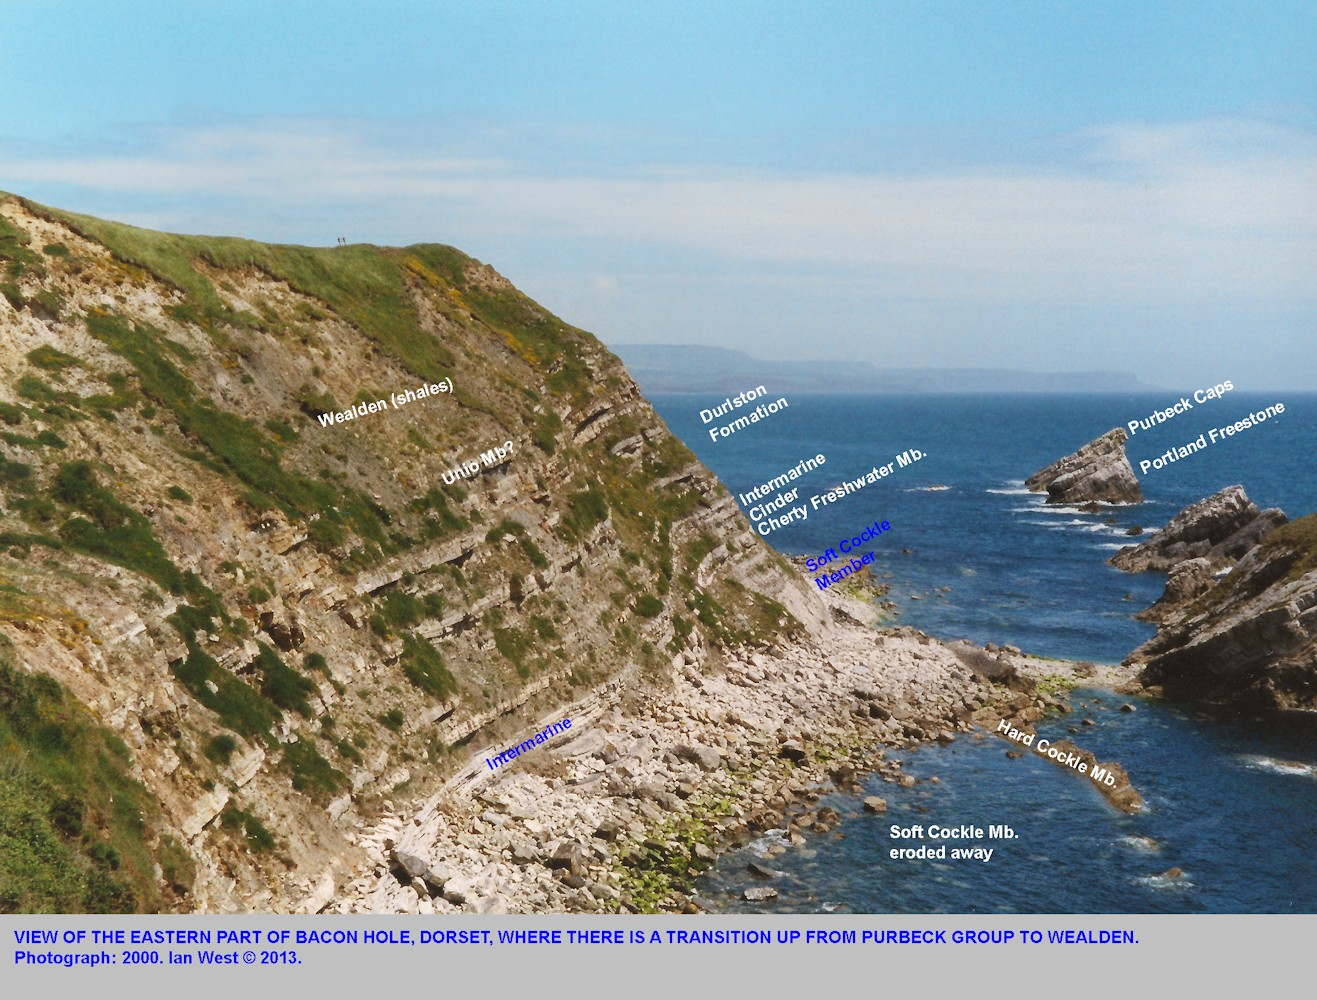 The Purbeck Group, including the Durlston Formation at the eastern end of Bacon Hole, near Mupe Bay, Dorset, 2000, labelled